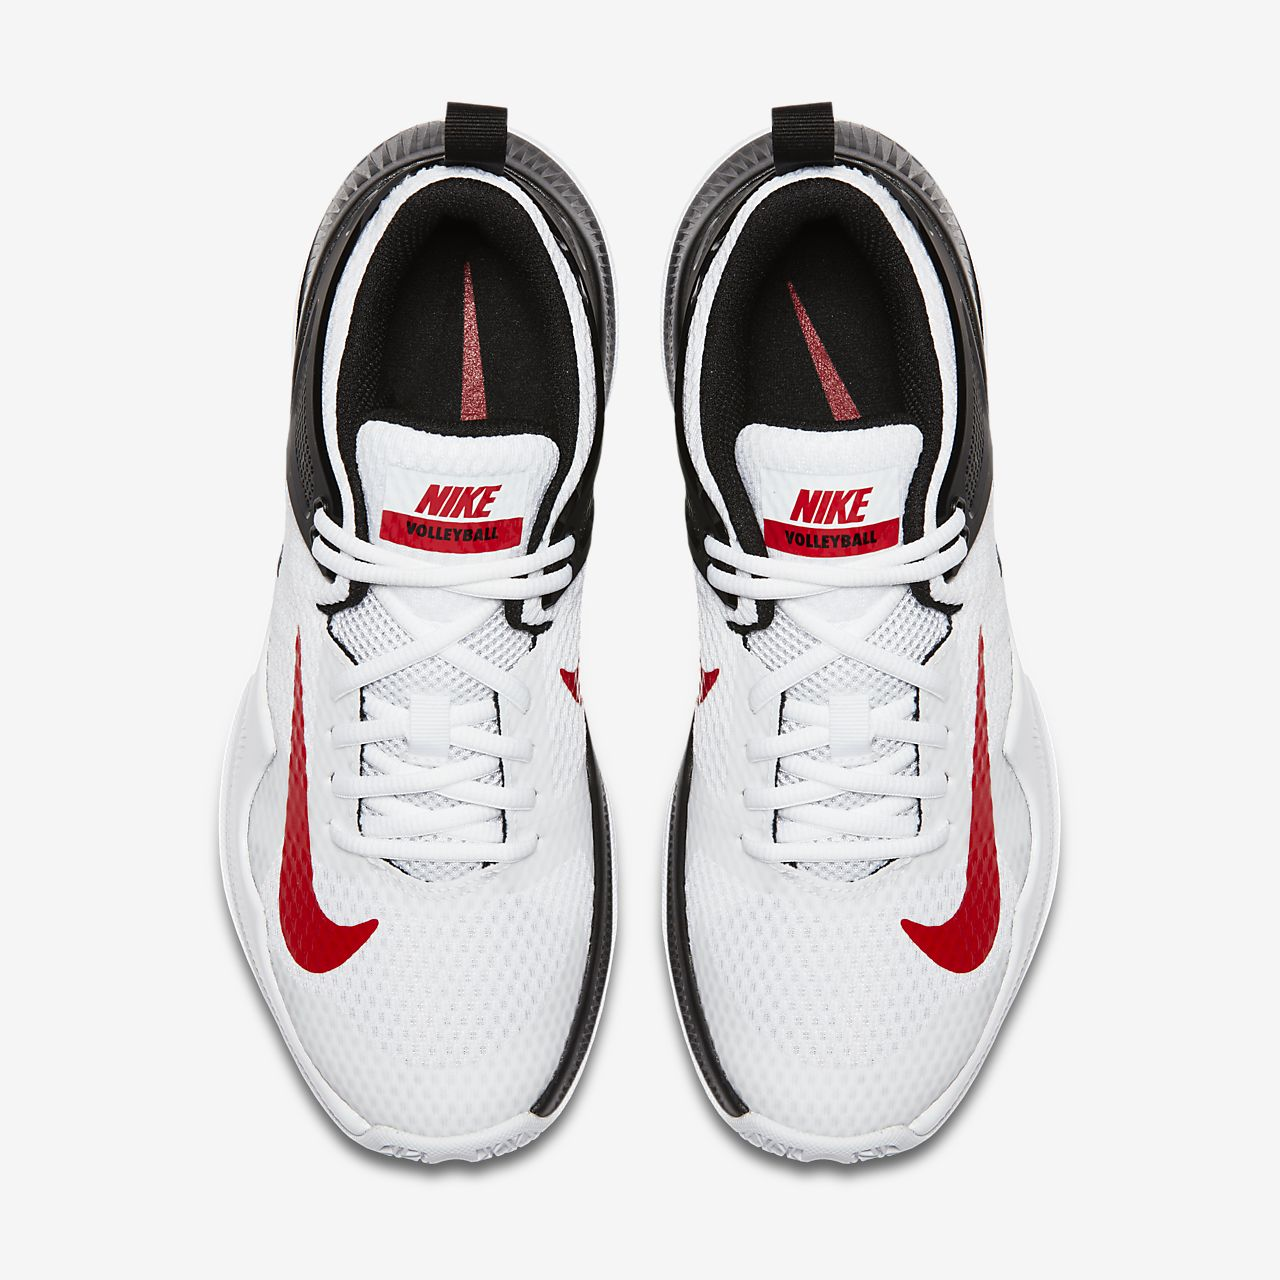 2d6472ae0ba3f4 nike air zoom volleyball shoe cheap   OFF30% The Largest Catalog ...